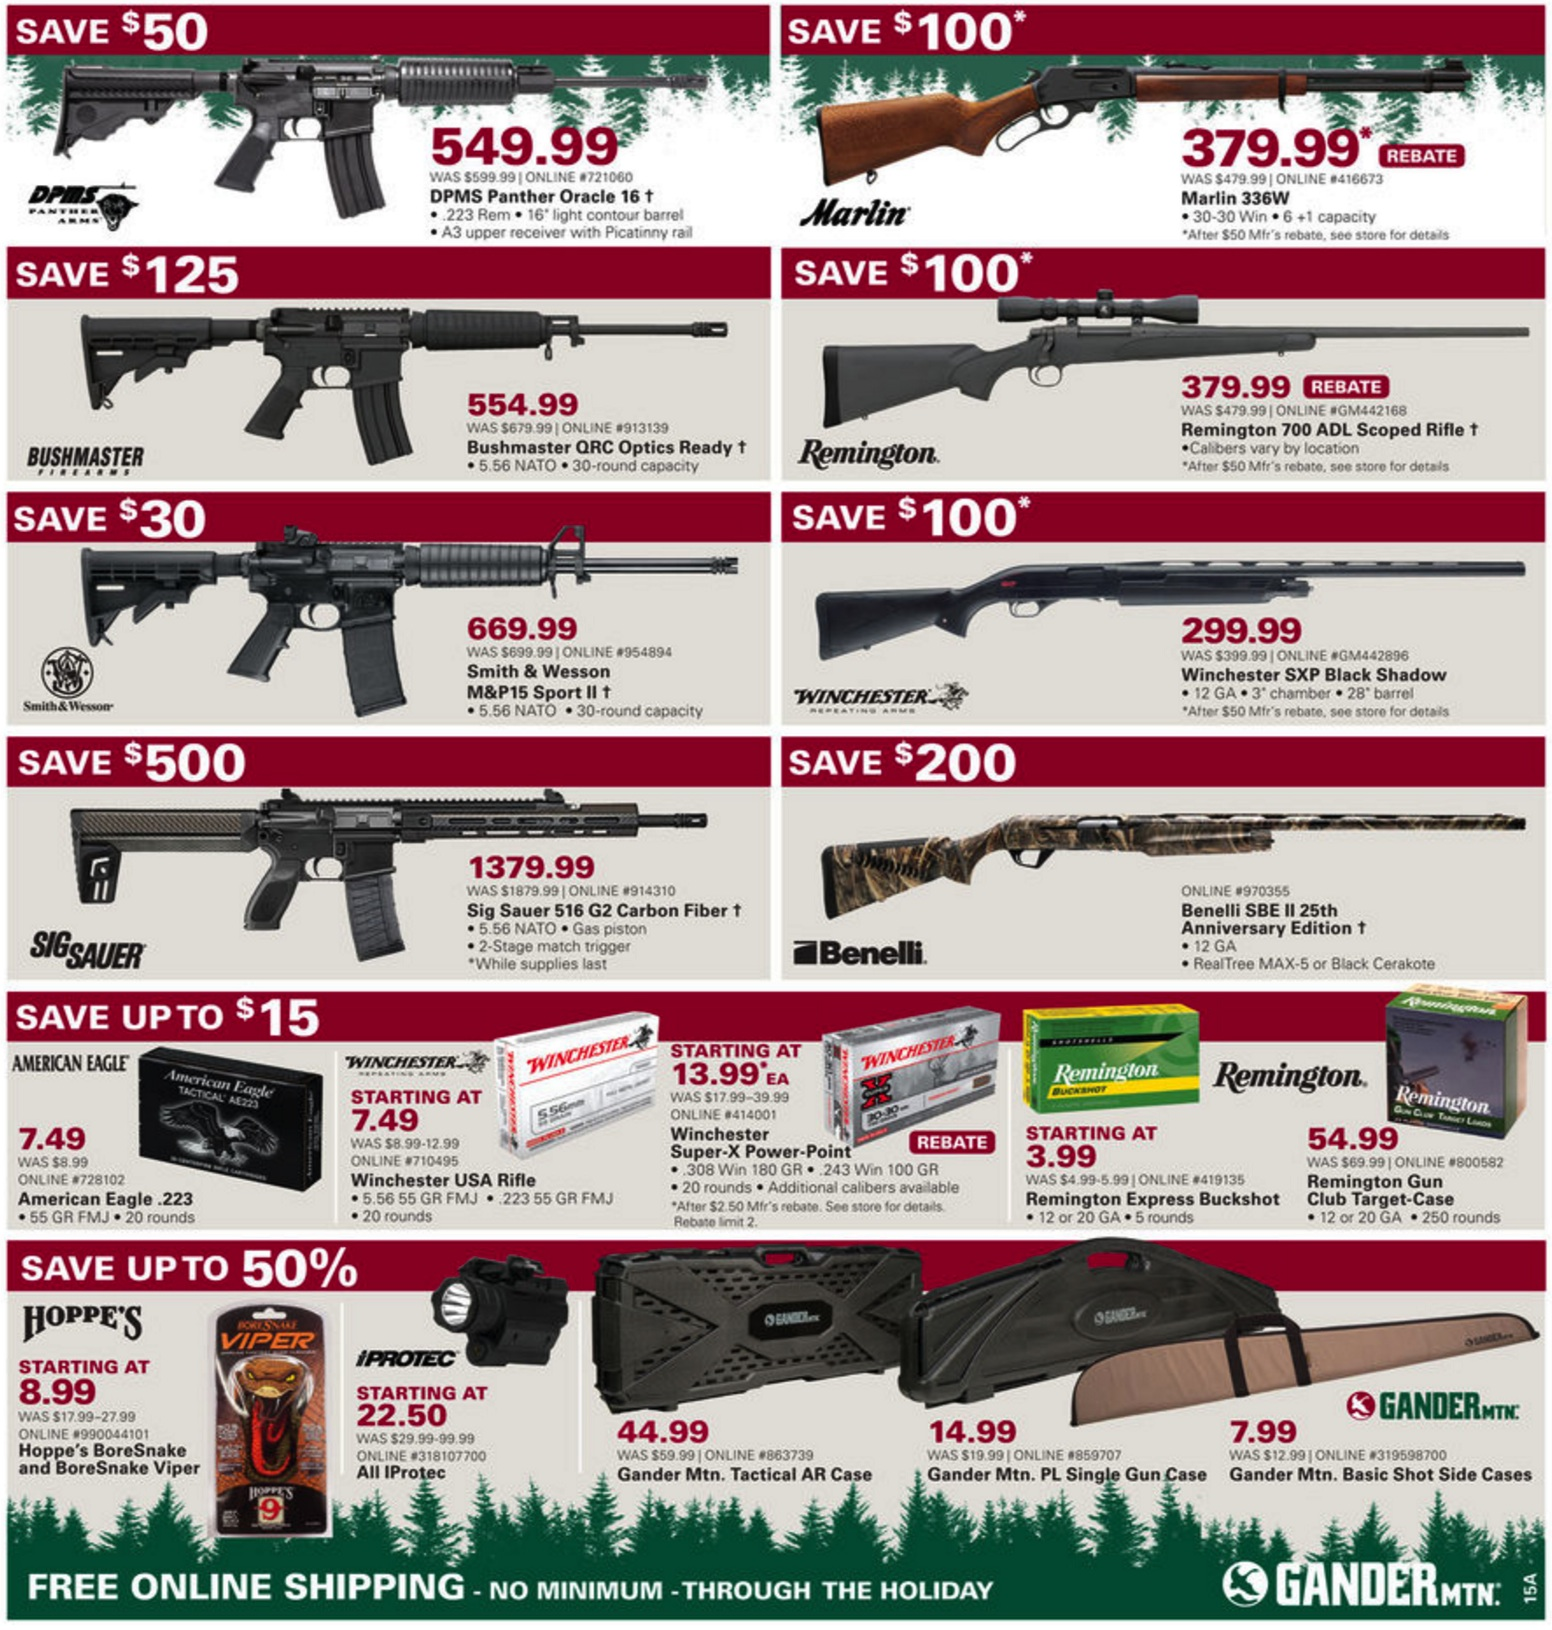 Gander Outdoors has released their Black Friday ad! You'll be able to find an assortment of outdoor sporting goods such as fishing and camping gear, firearms, apparel, and so much more. In this ad, you'll find some of the biggest savings on recreation merchandise and services.4/5(7).